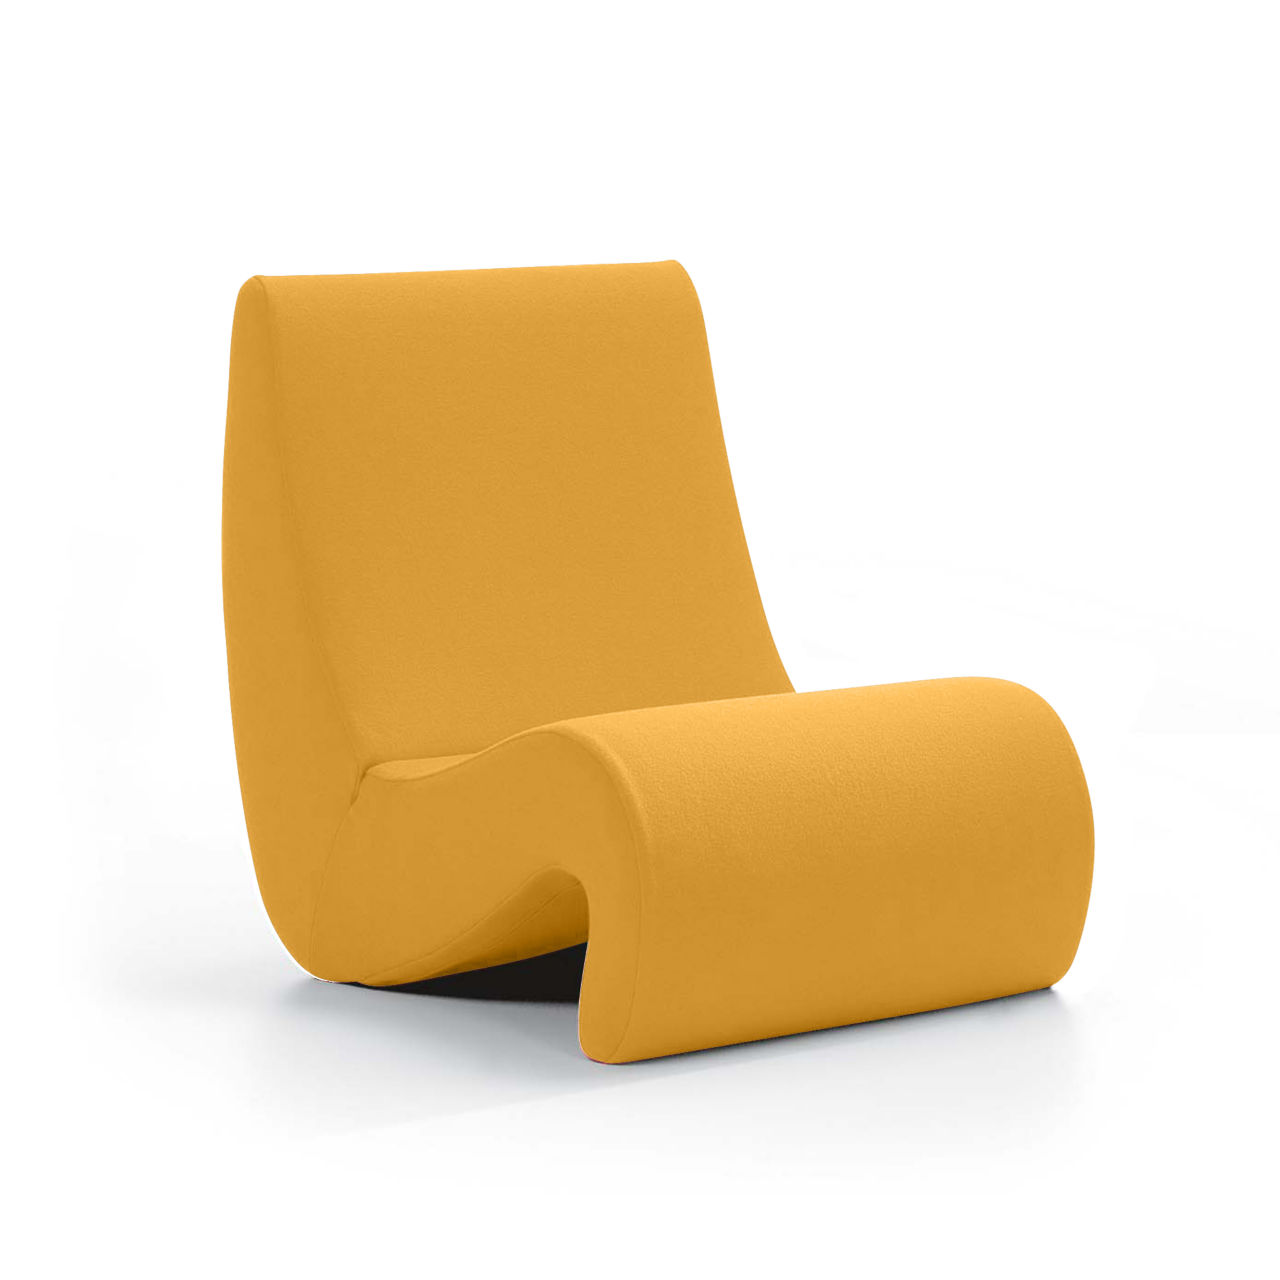 Amoebe Chair in Golden Yellow Highback by Vitra